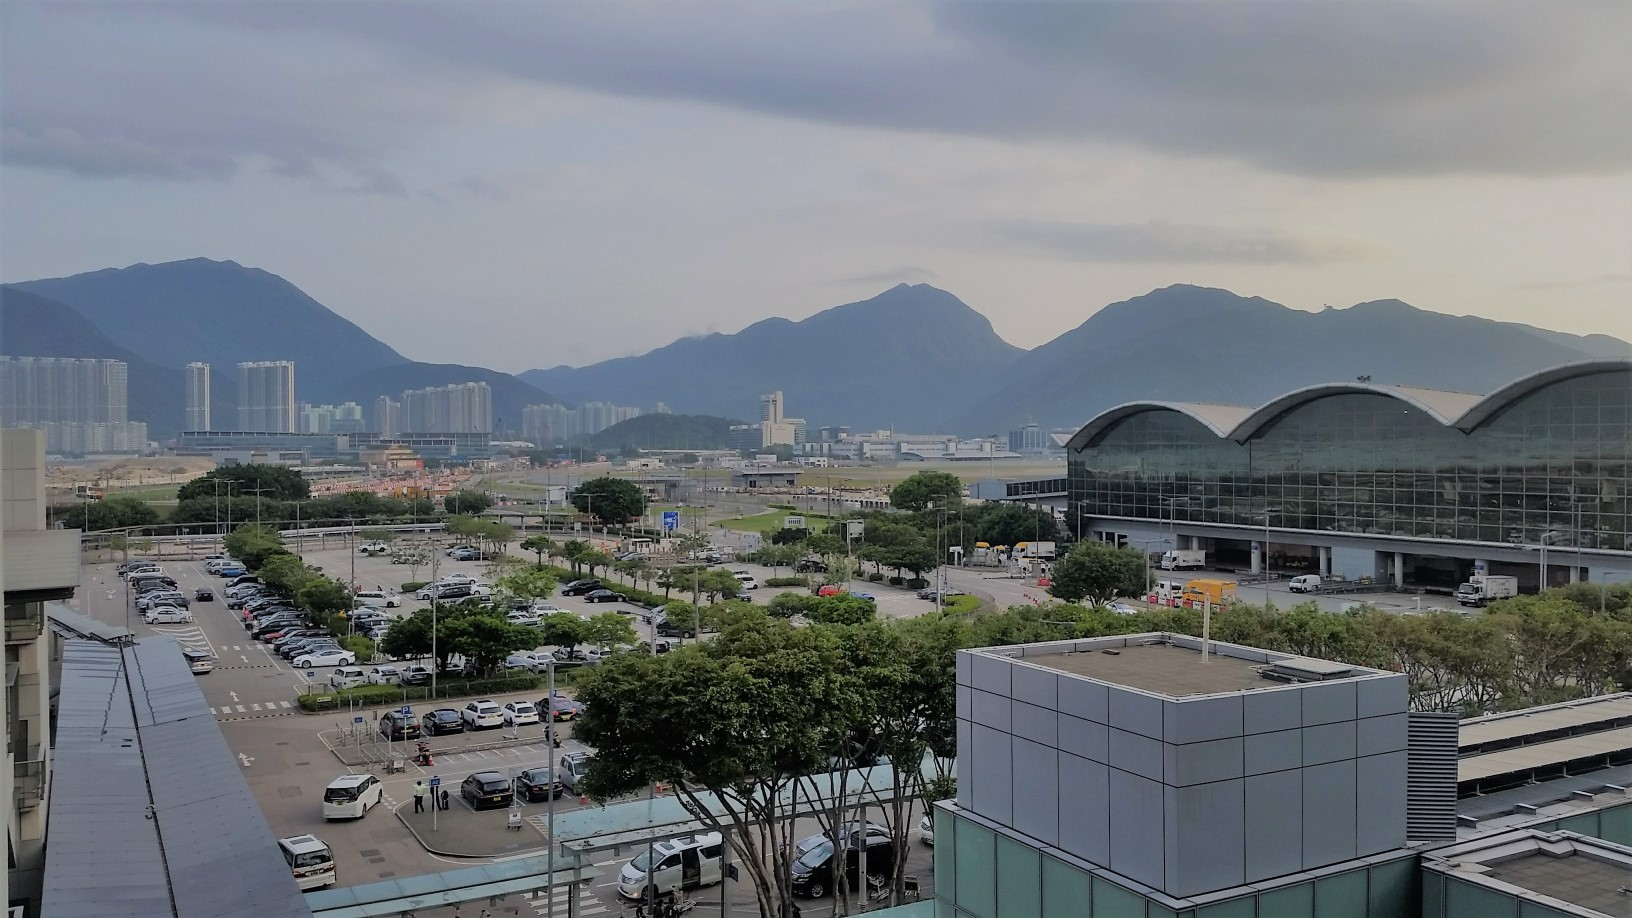 First view of HK (from the airport)